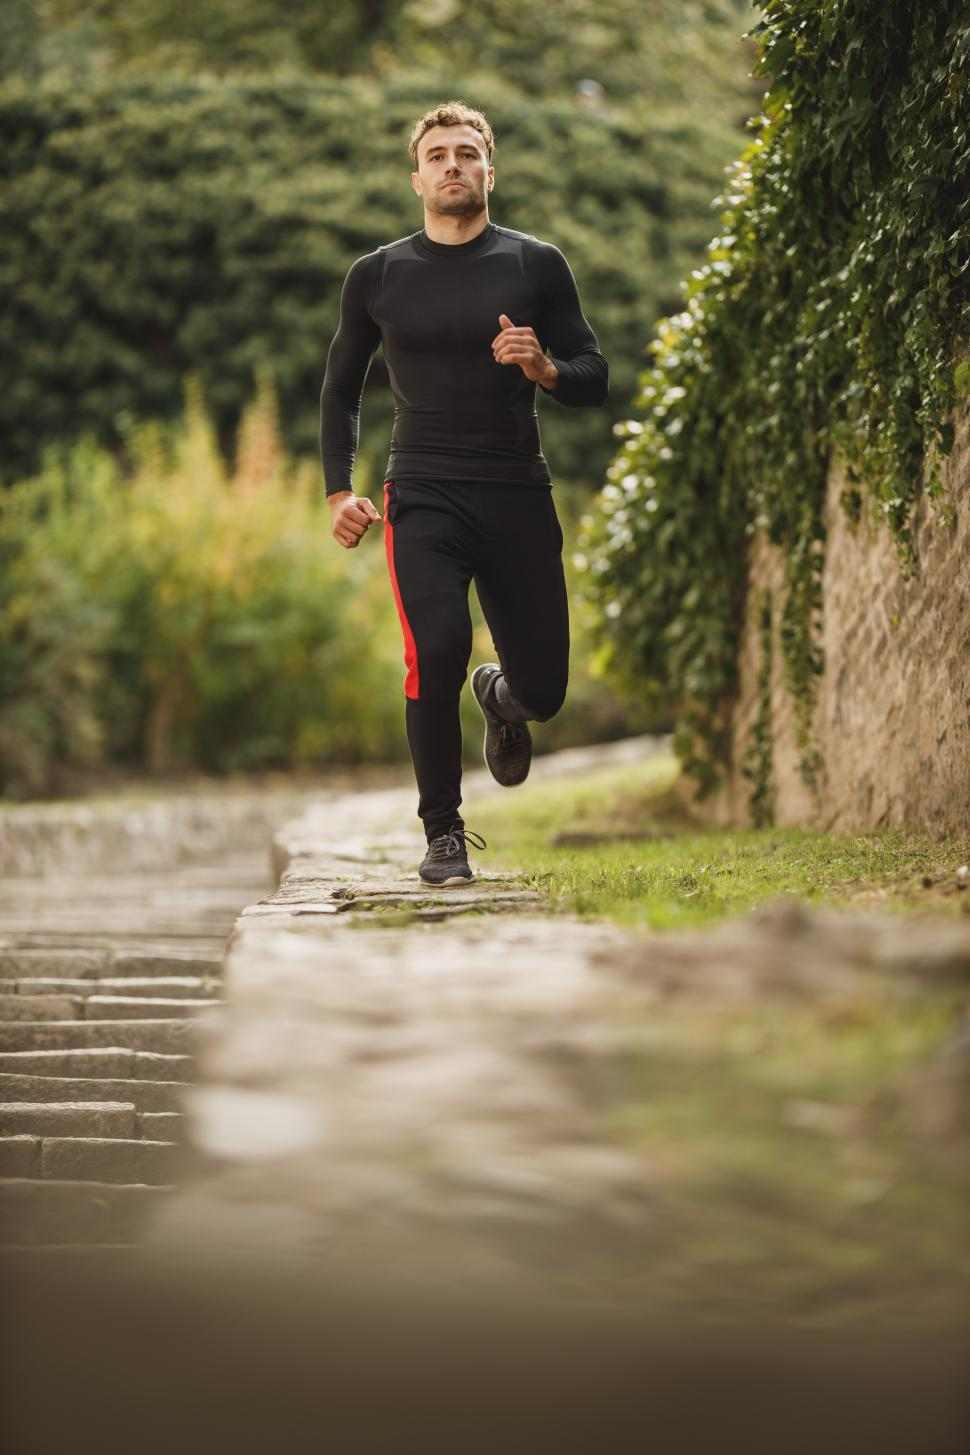 Download Free Stock Photo of Male athlete running in the park - looking at camera